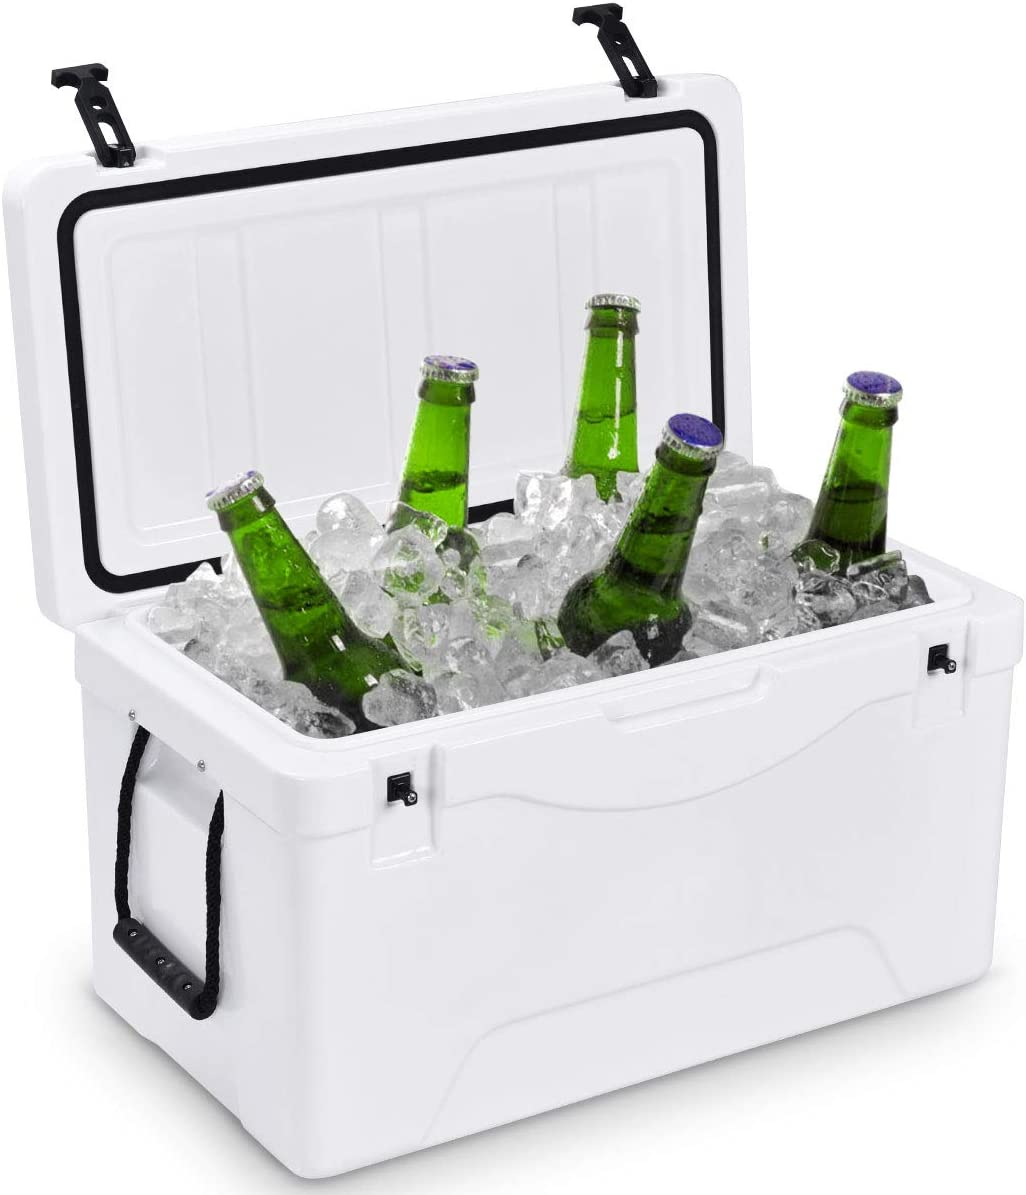 Giantex 64 Quart Heavy Duty Cooler Ice Chest Outdoor Insulated Cooler Fishing Hunting Sports (White)